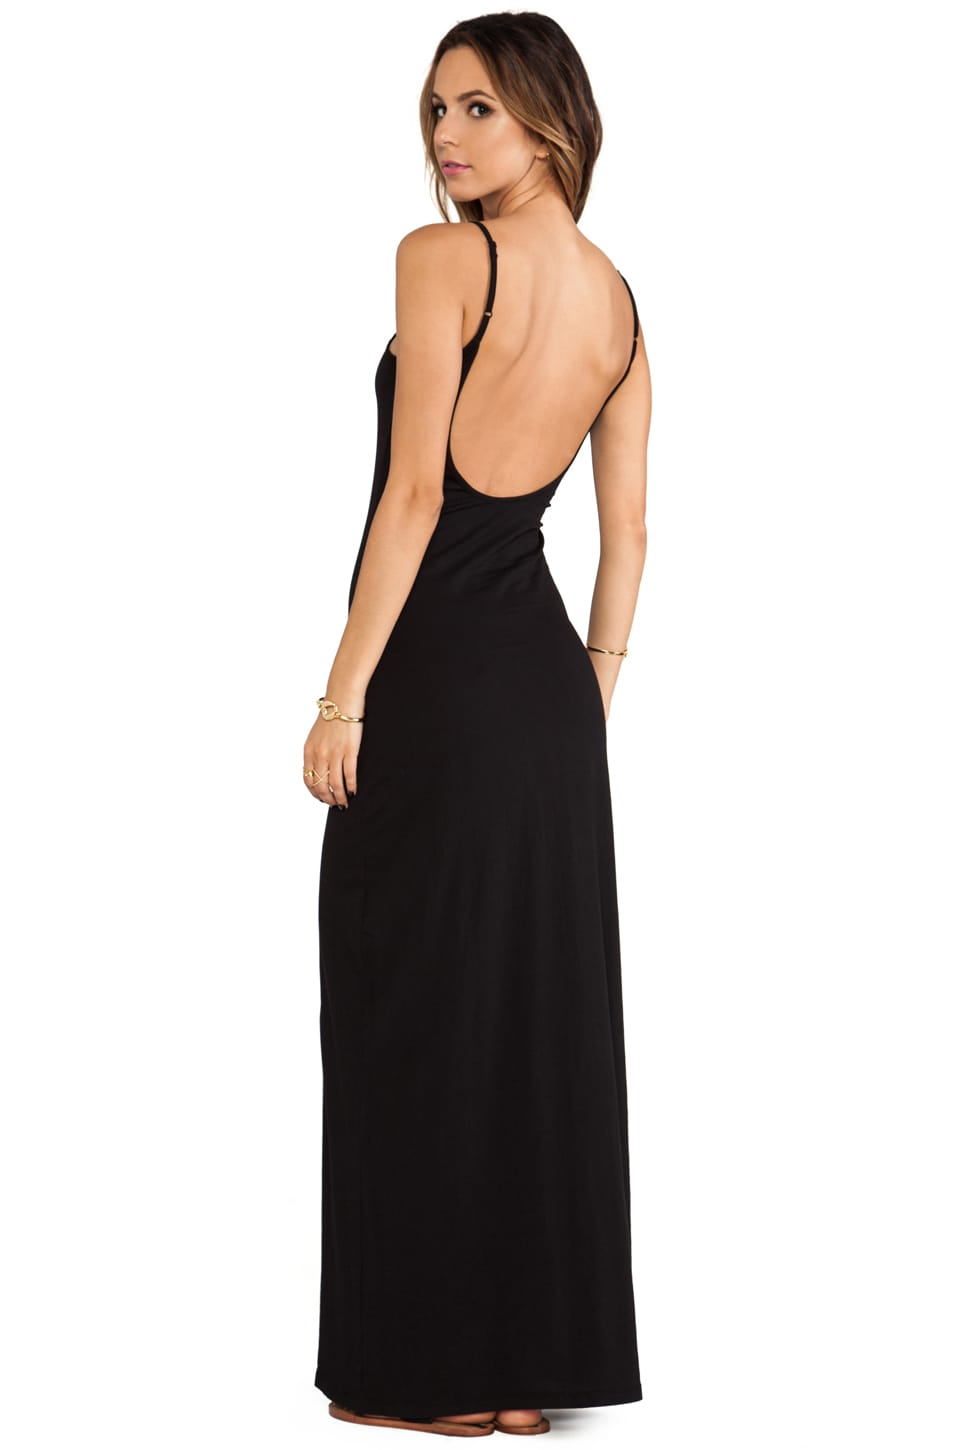 Bobi Open Back Maxi Dress in Black